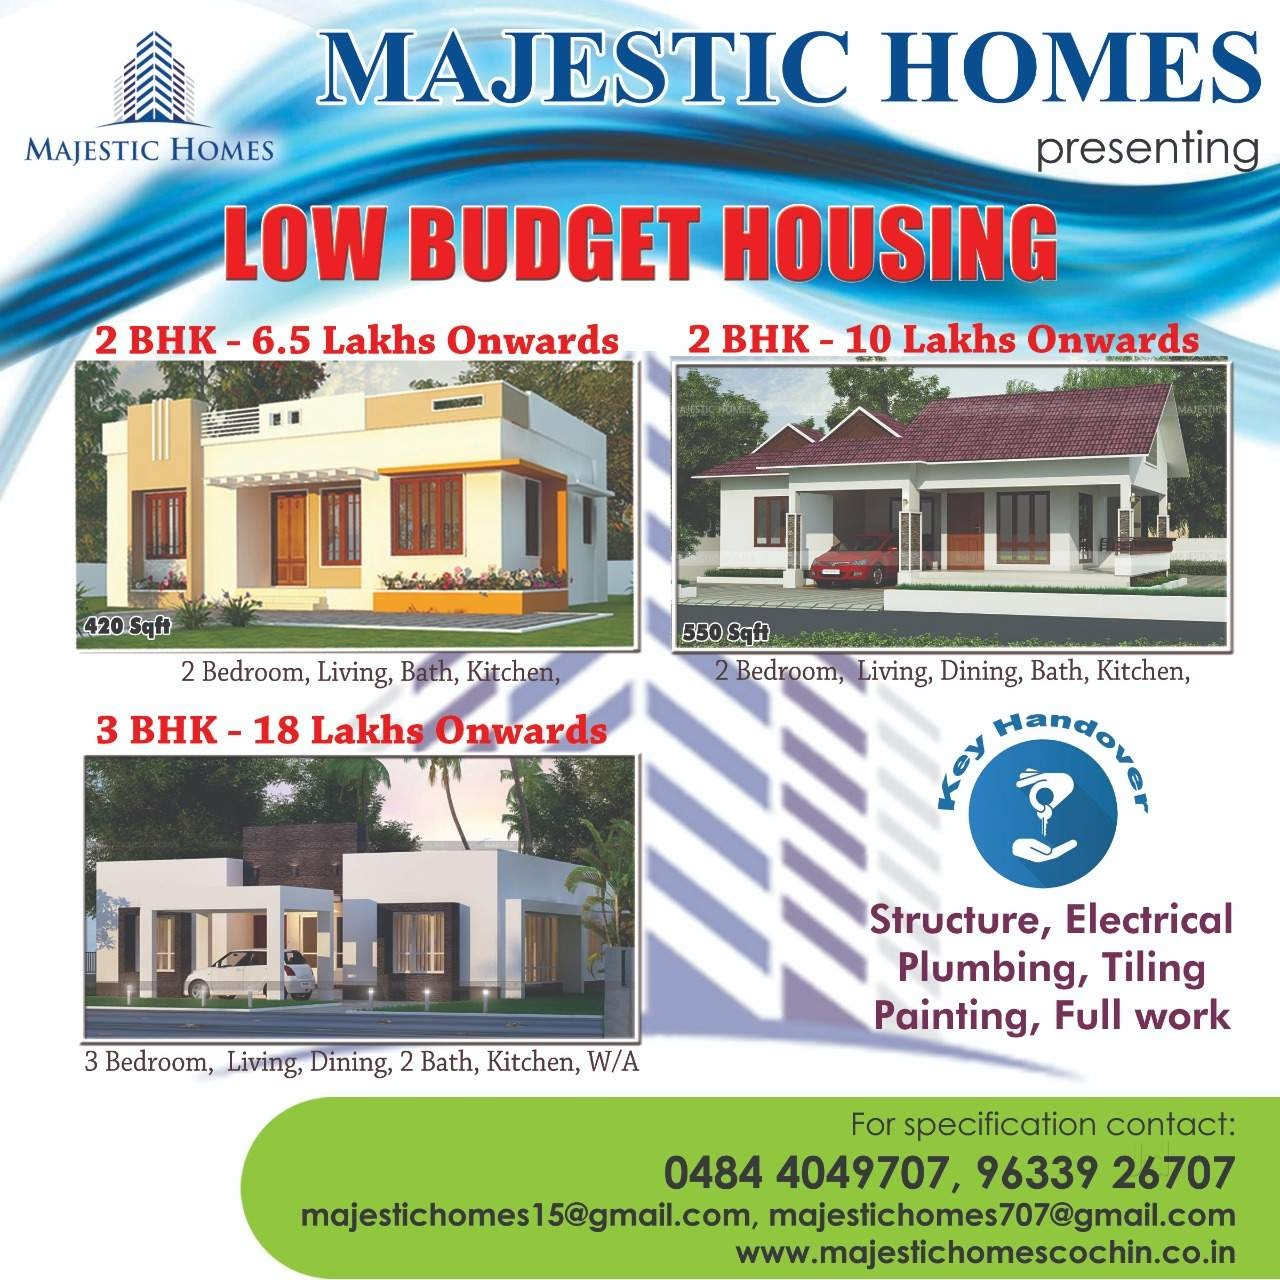 Majestic Homes, CONTRACTOR,  service in Ranni, Pathanamthitta